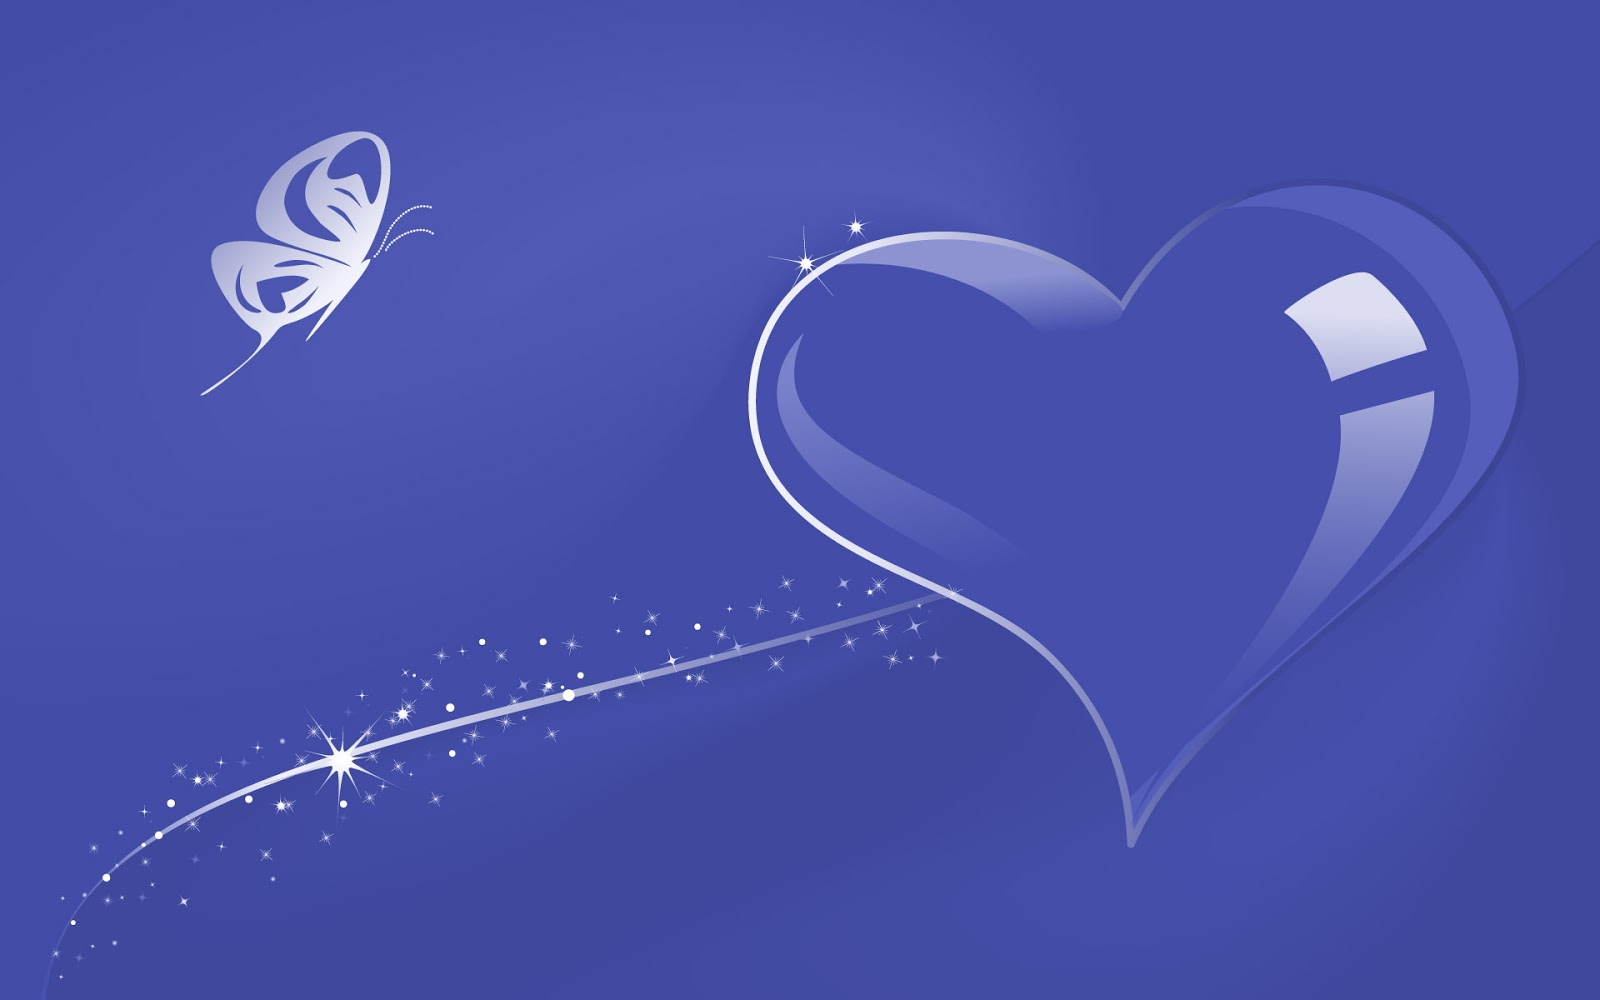 Love Wallpapers Desktop